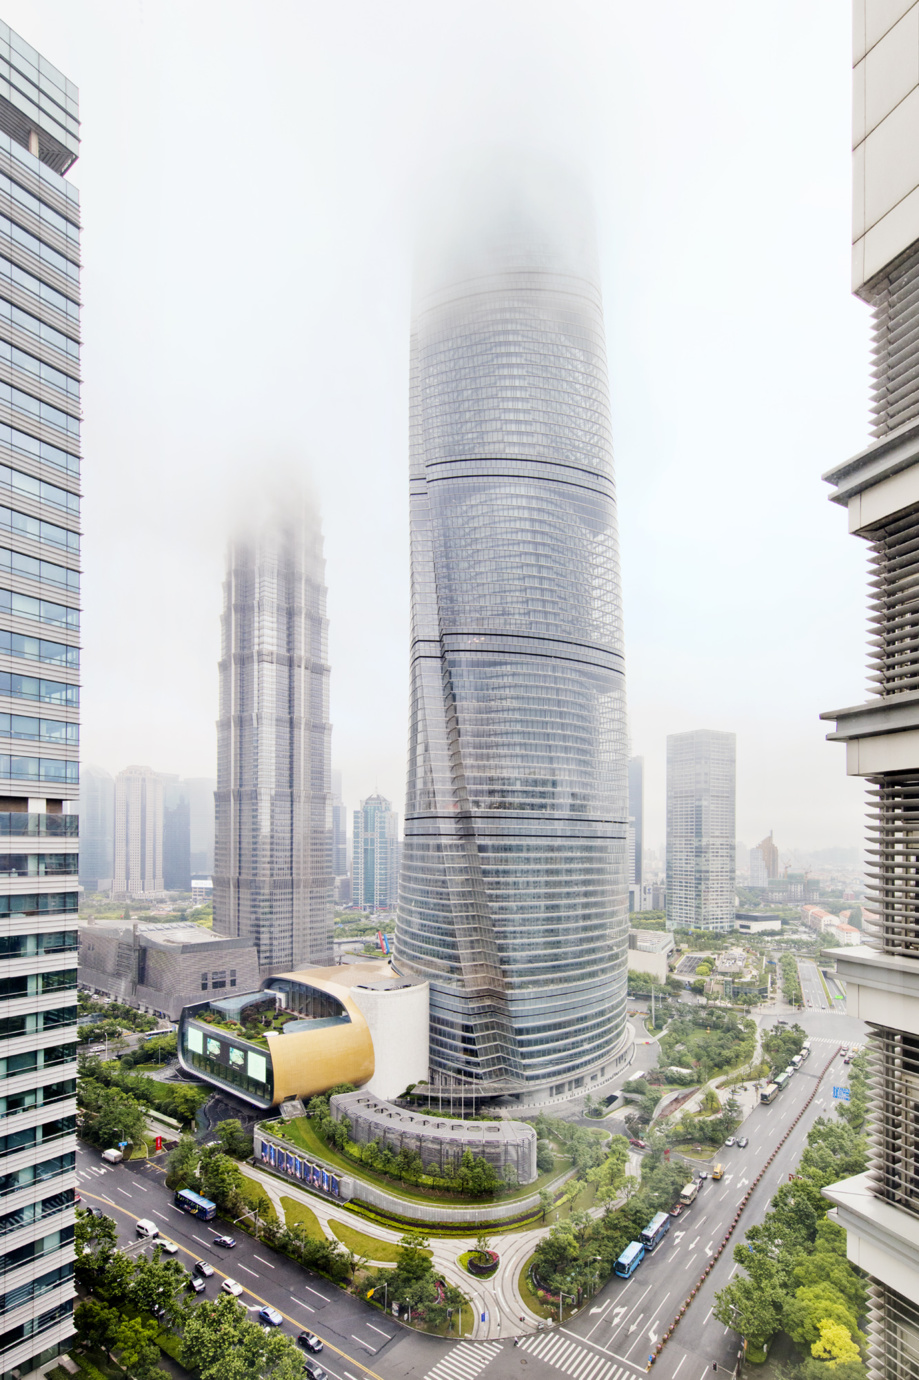 Shanghai Tower Copyright: Connie Zhou